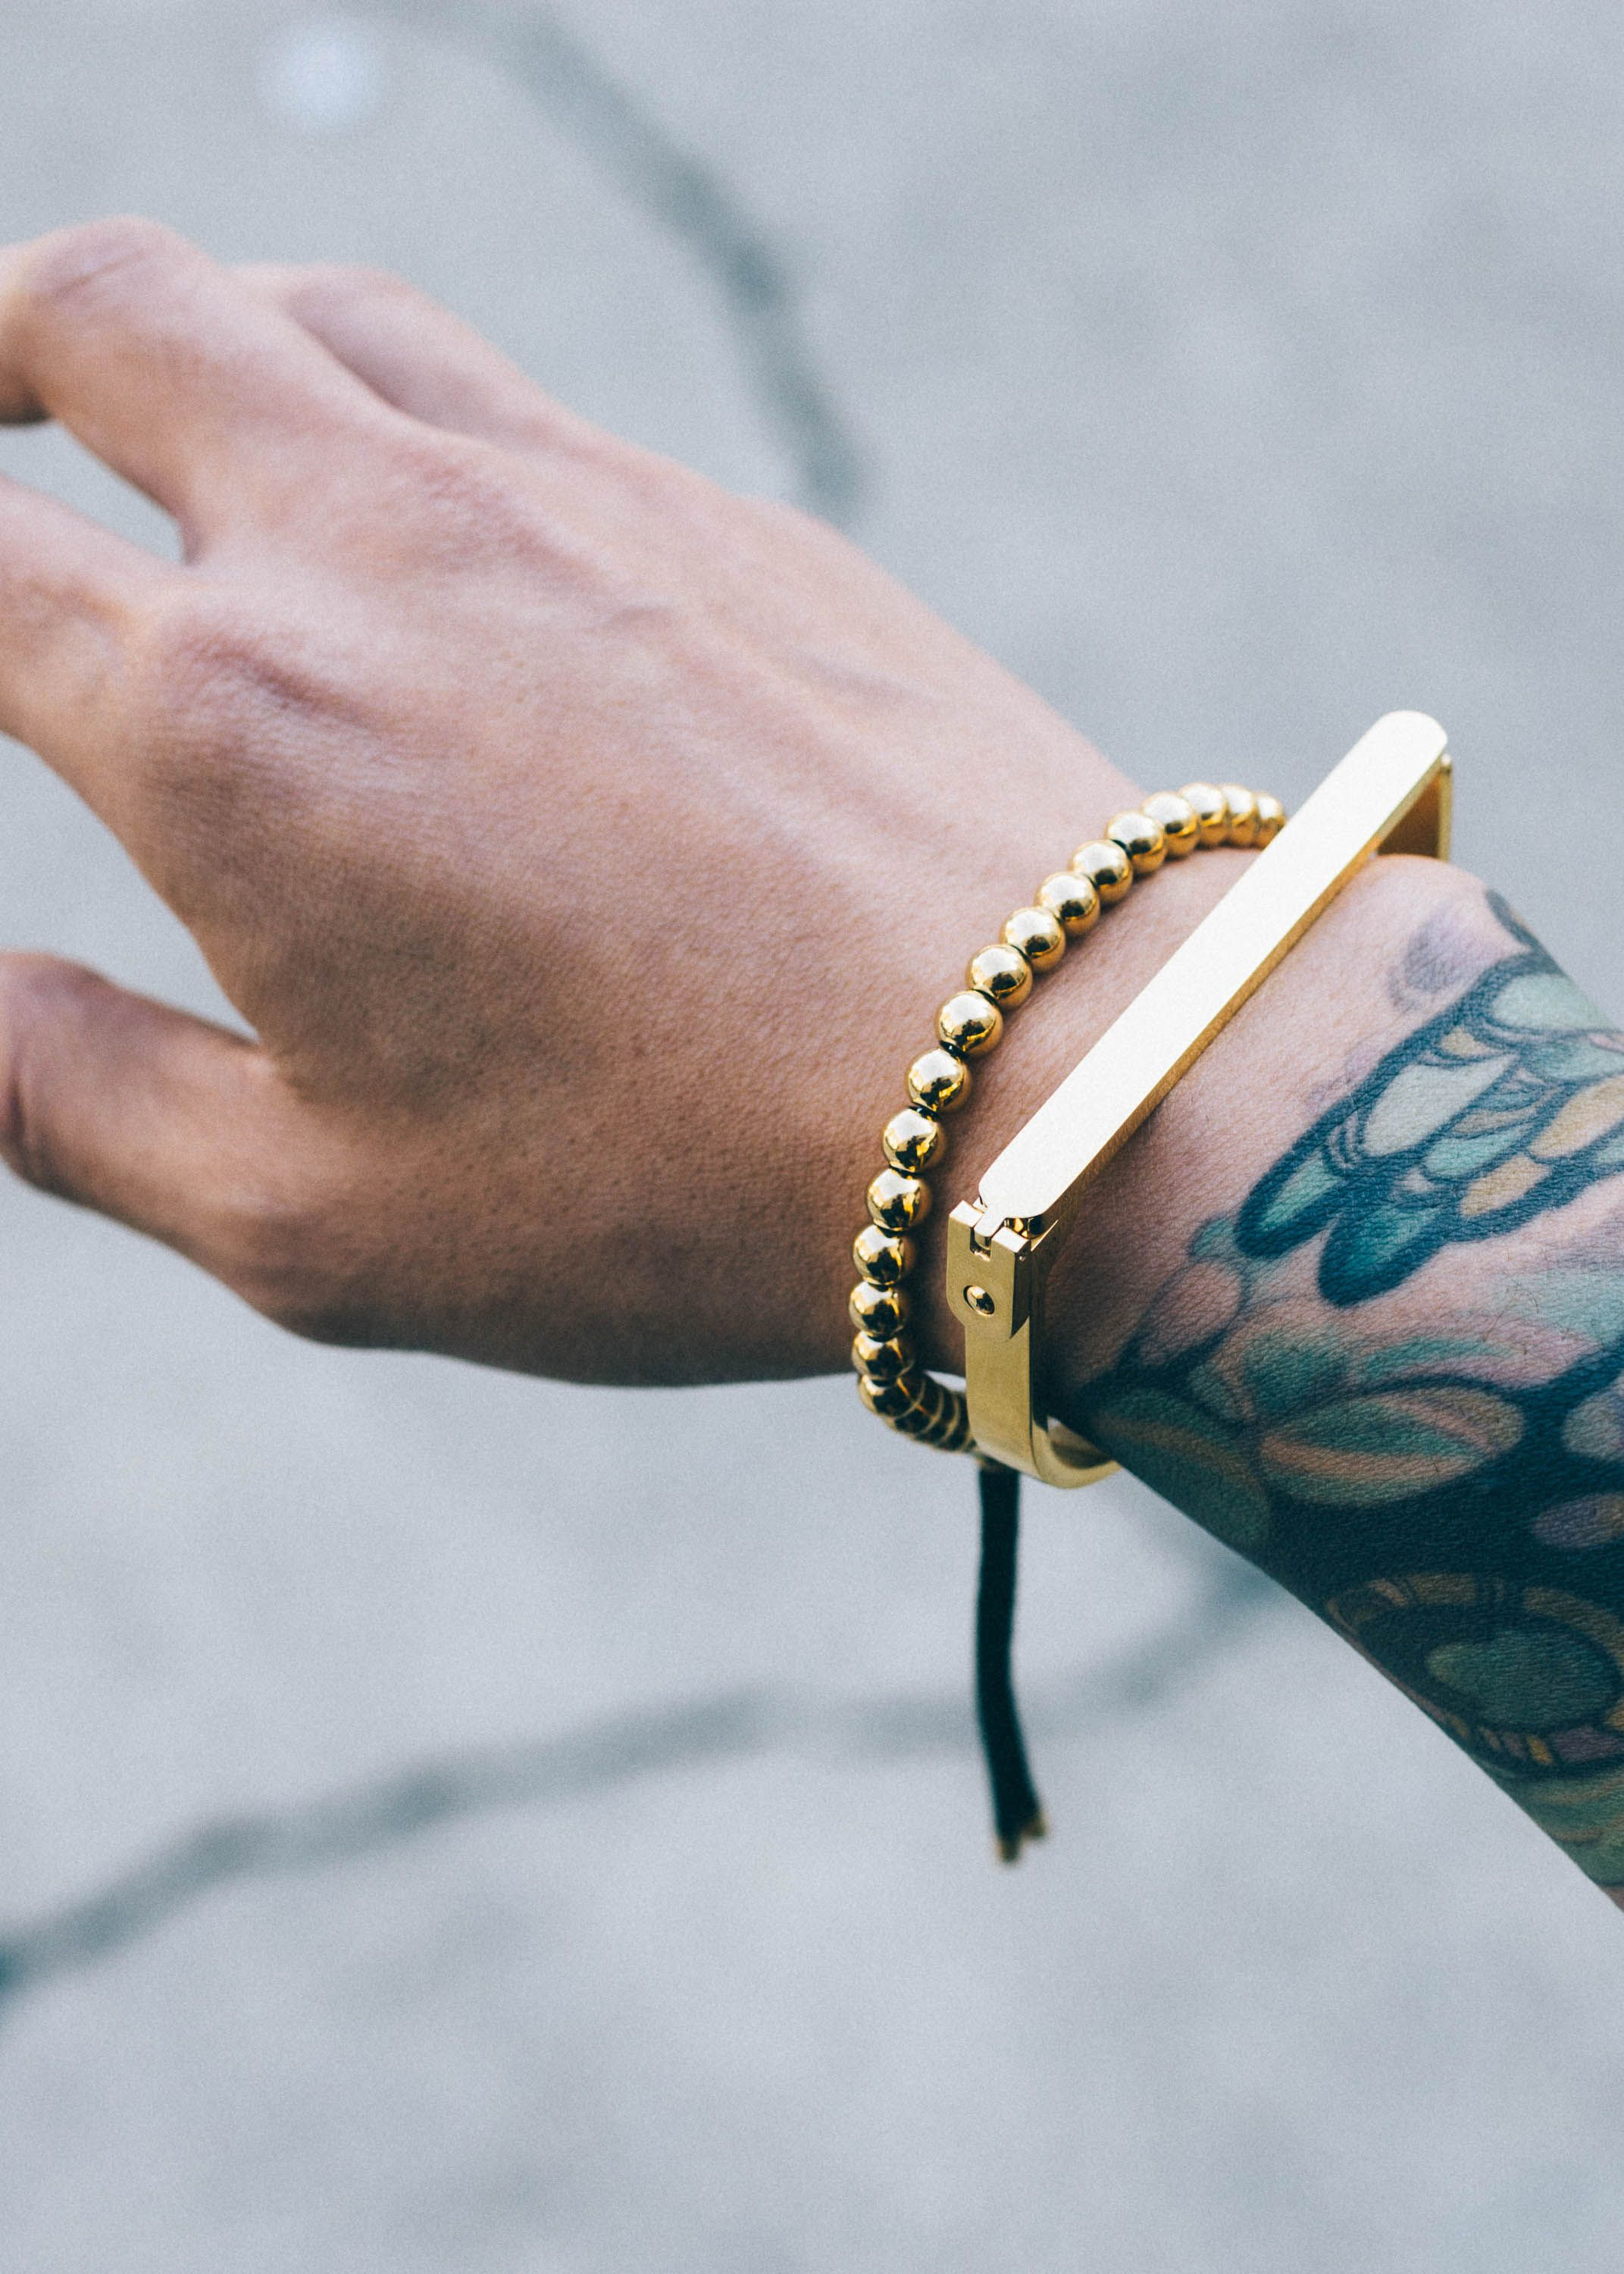 Every Man Needs To Own These Edgy Bracelets By Mister